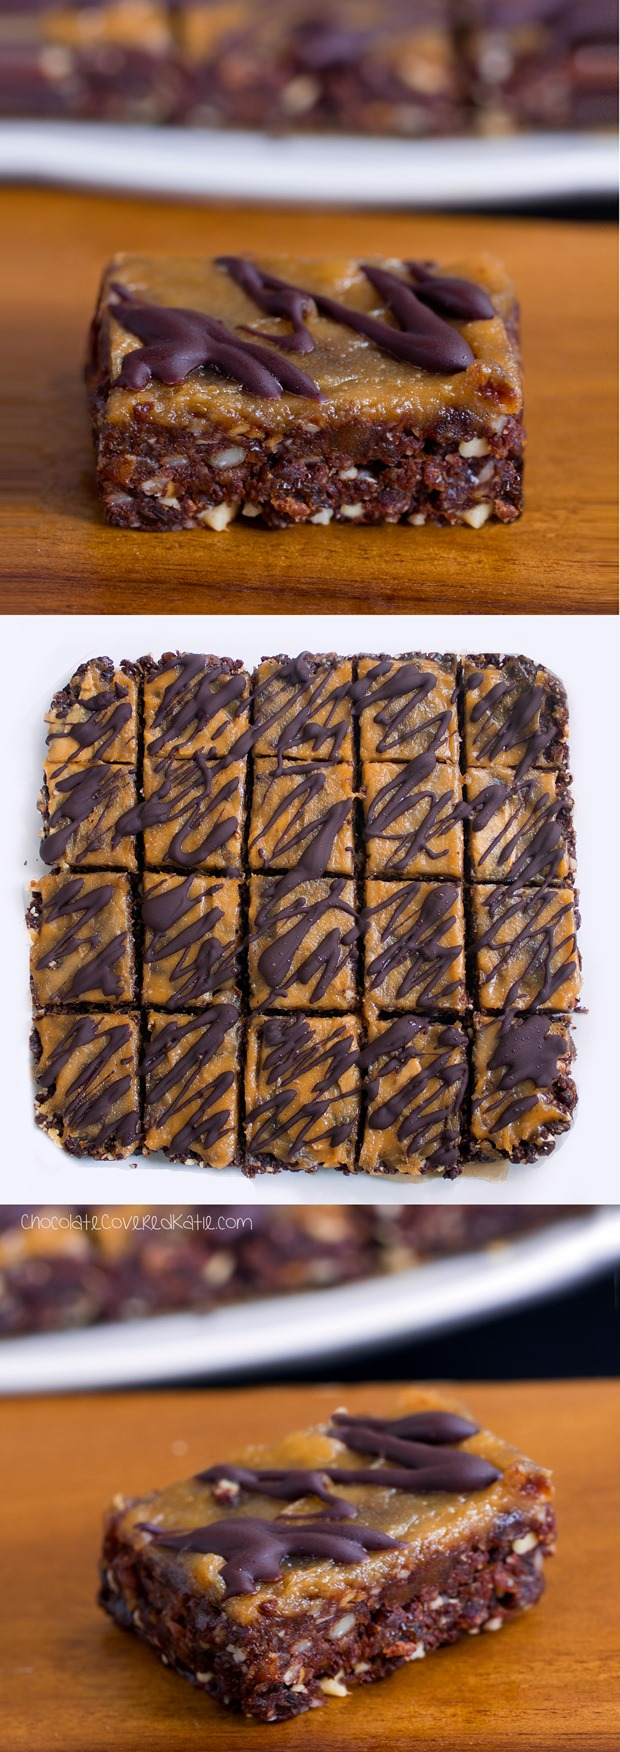 Secretly healthy brownie bars - from @choccoveredkt... oil-free, sugar-free, raw, #vegan, paleo, & gluten-free. Full recipe: https://chocolatecoveredkatie.com/2015/06/01/no-bake-chocolate-peanut-butter-brownie-bars/